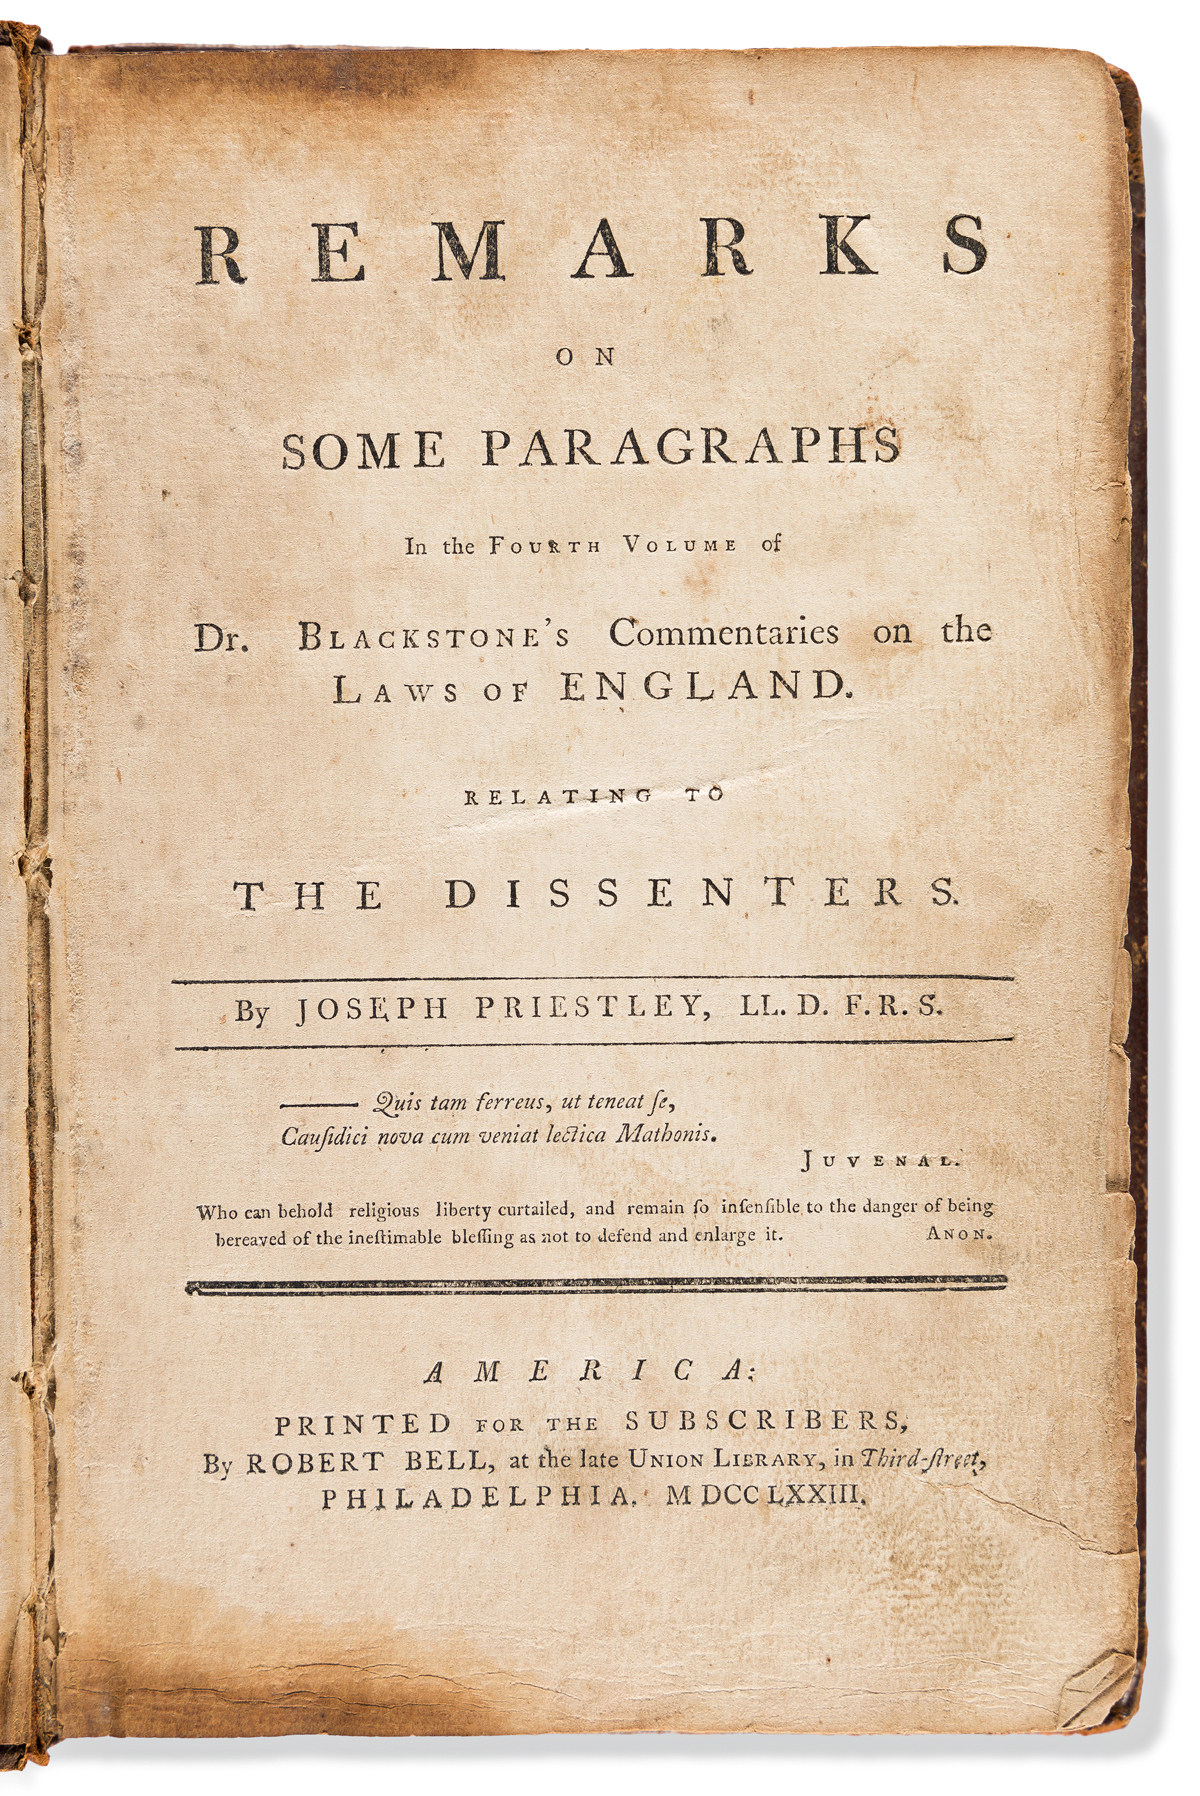 Blackstone, Sir William (1723-1780) An Interesting Appendix to Sir William Blackstones Commentaries on the Laws of England.